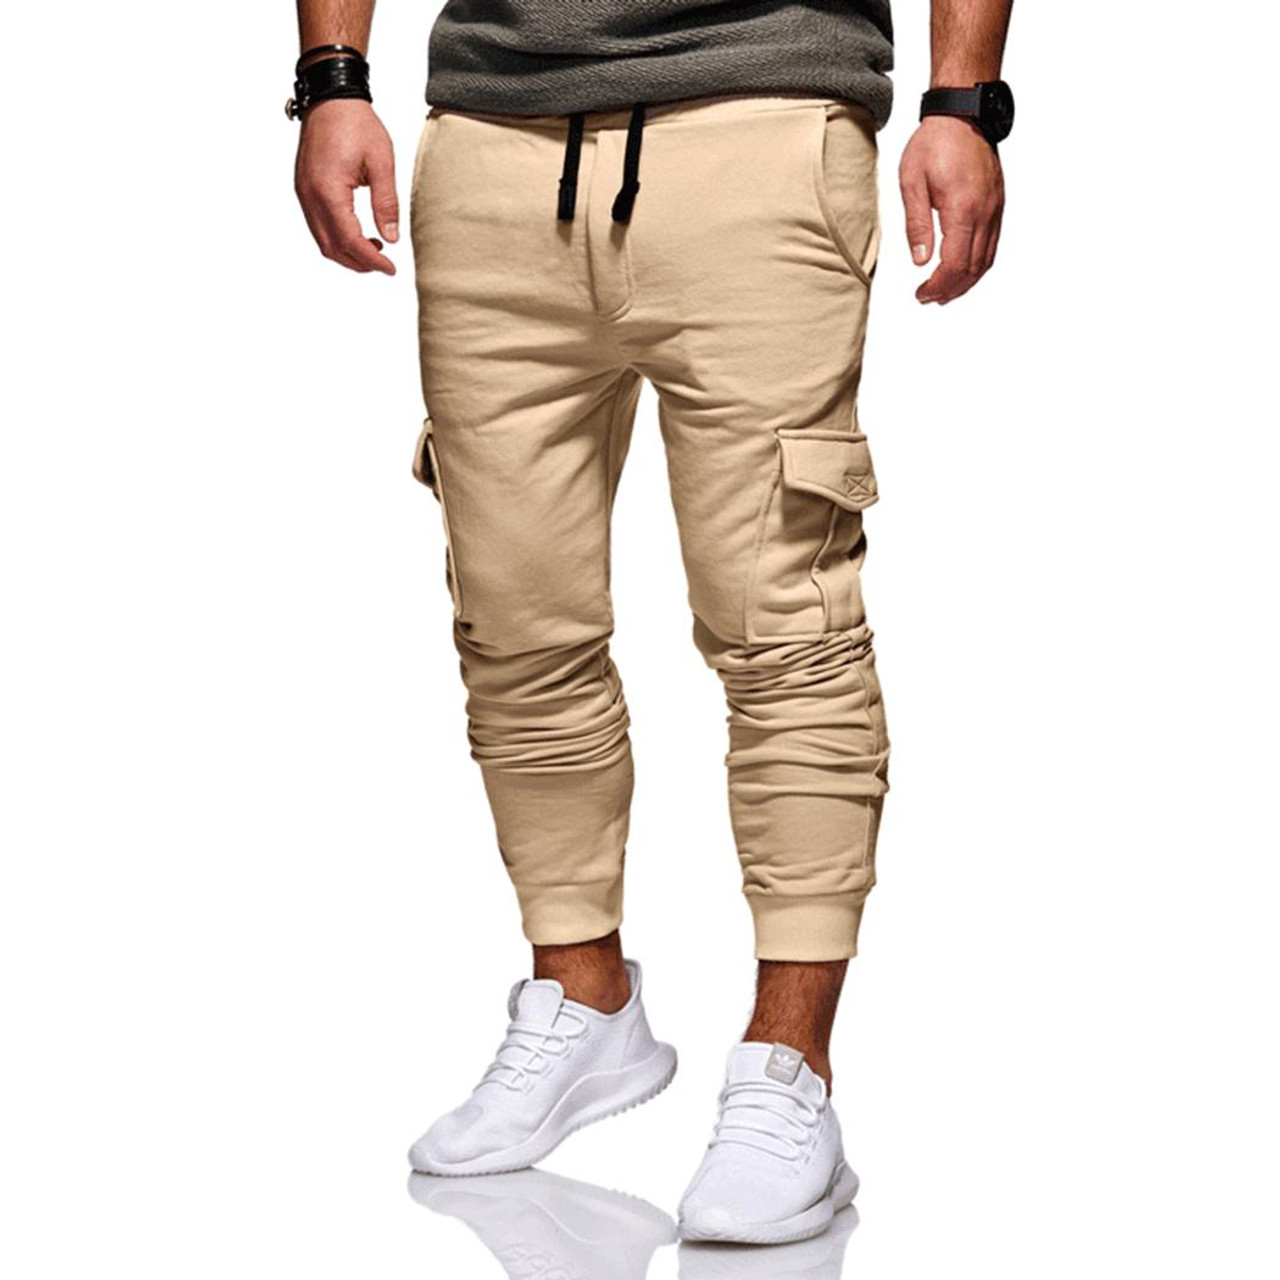 73763de6568 New 2019 Men Cargo Pants Fashion Tactical Joggers Fitness Workout Pockets  Sweatpants Plus Size 4XL Casual ...